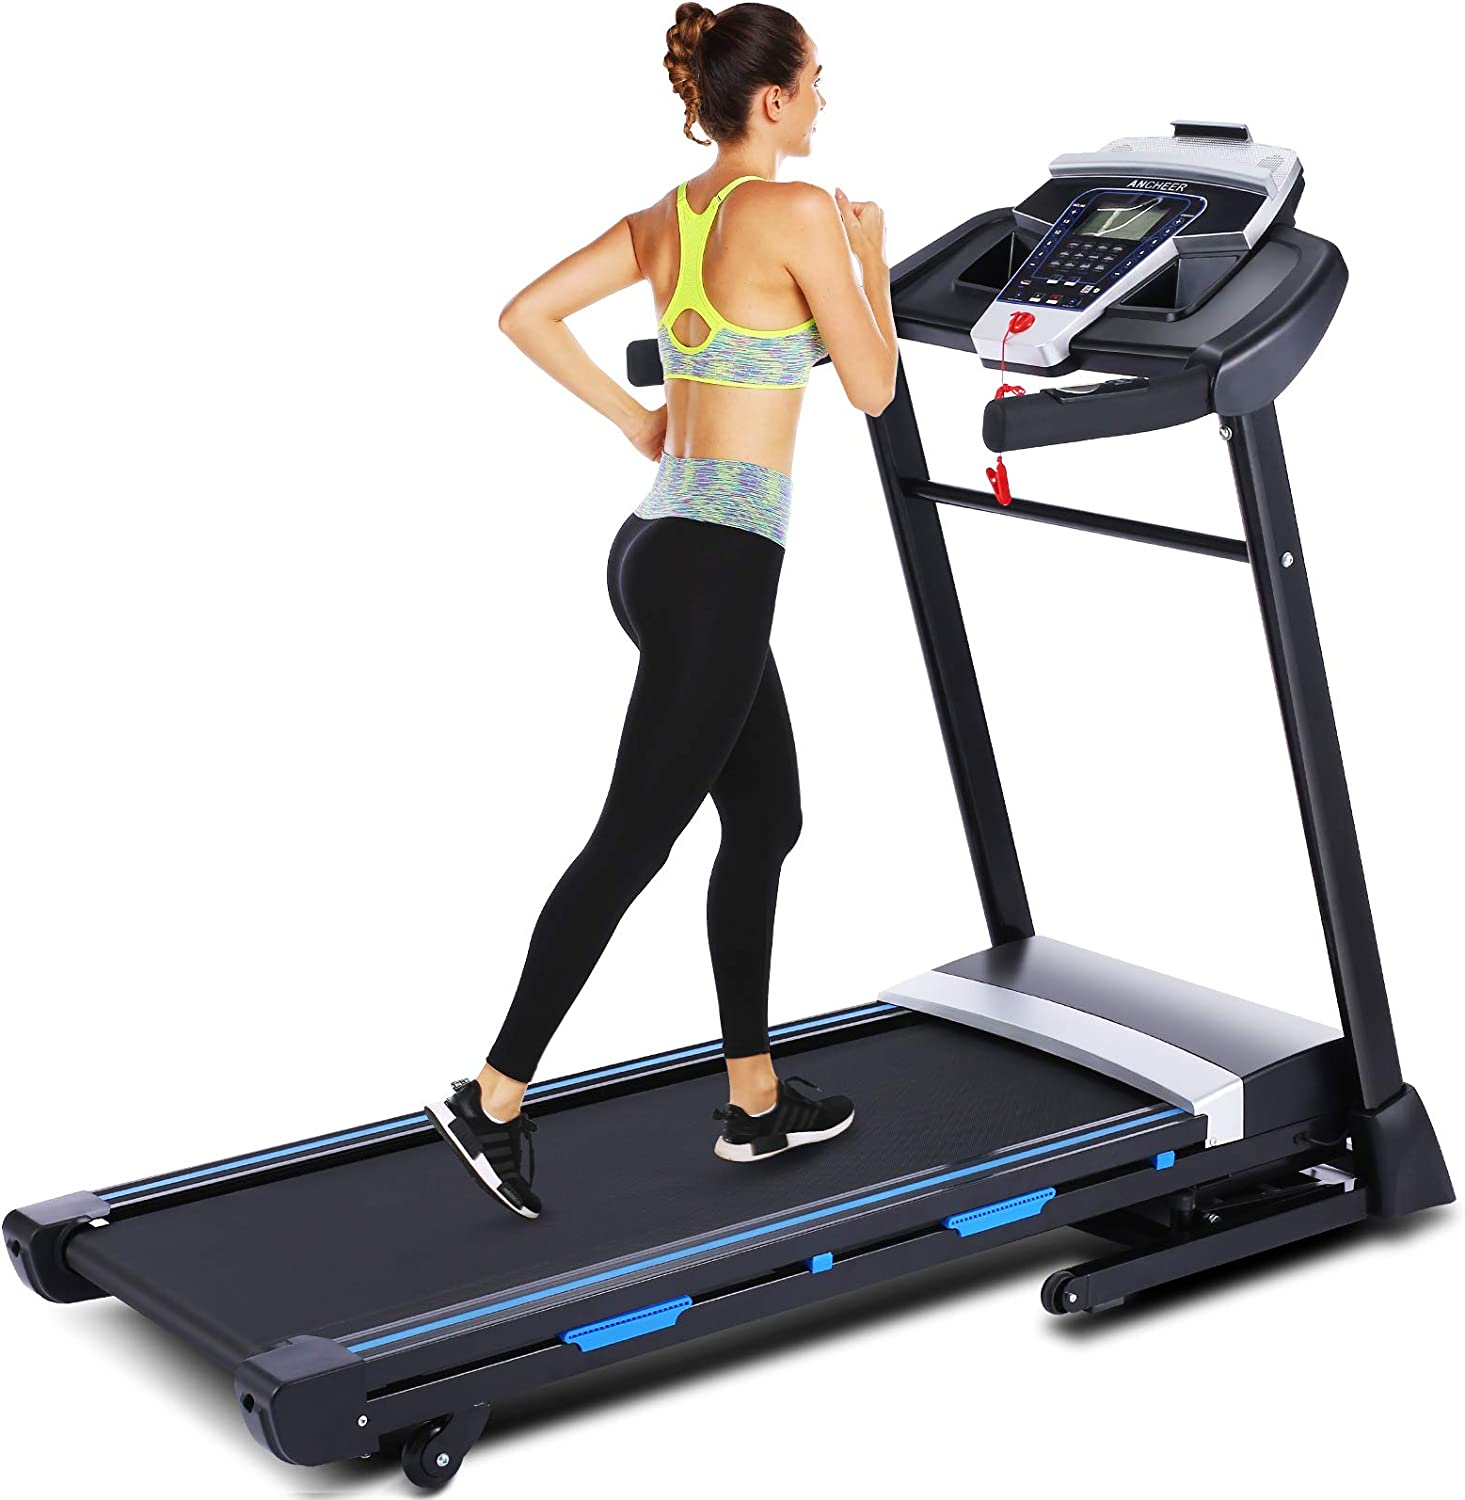 Ultrar 3.25HP Folding Treadmill, Electric Automatic Incline Treadmill, Walking Jogging Running Machine with APP Control for Home Gym Cardio Fitness Exercise Trainer (Black)